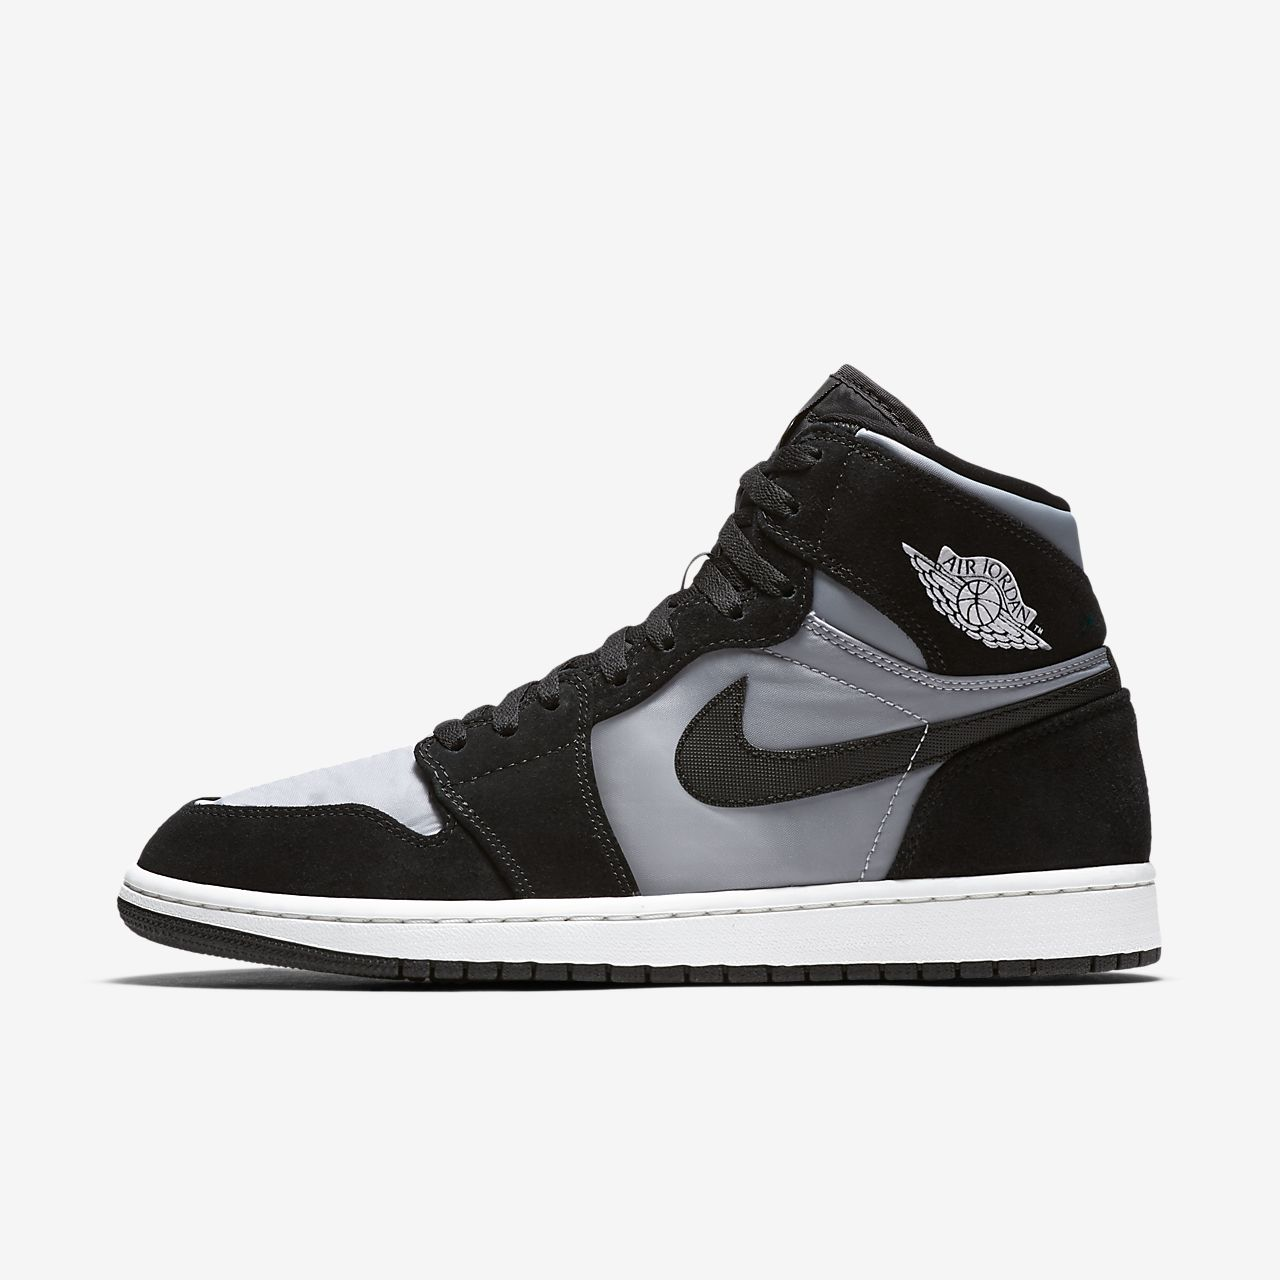 ... Air Jordan 1 Retro High Premium Men's Shoe